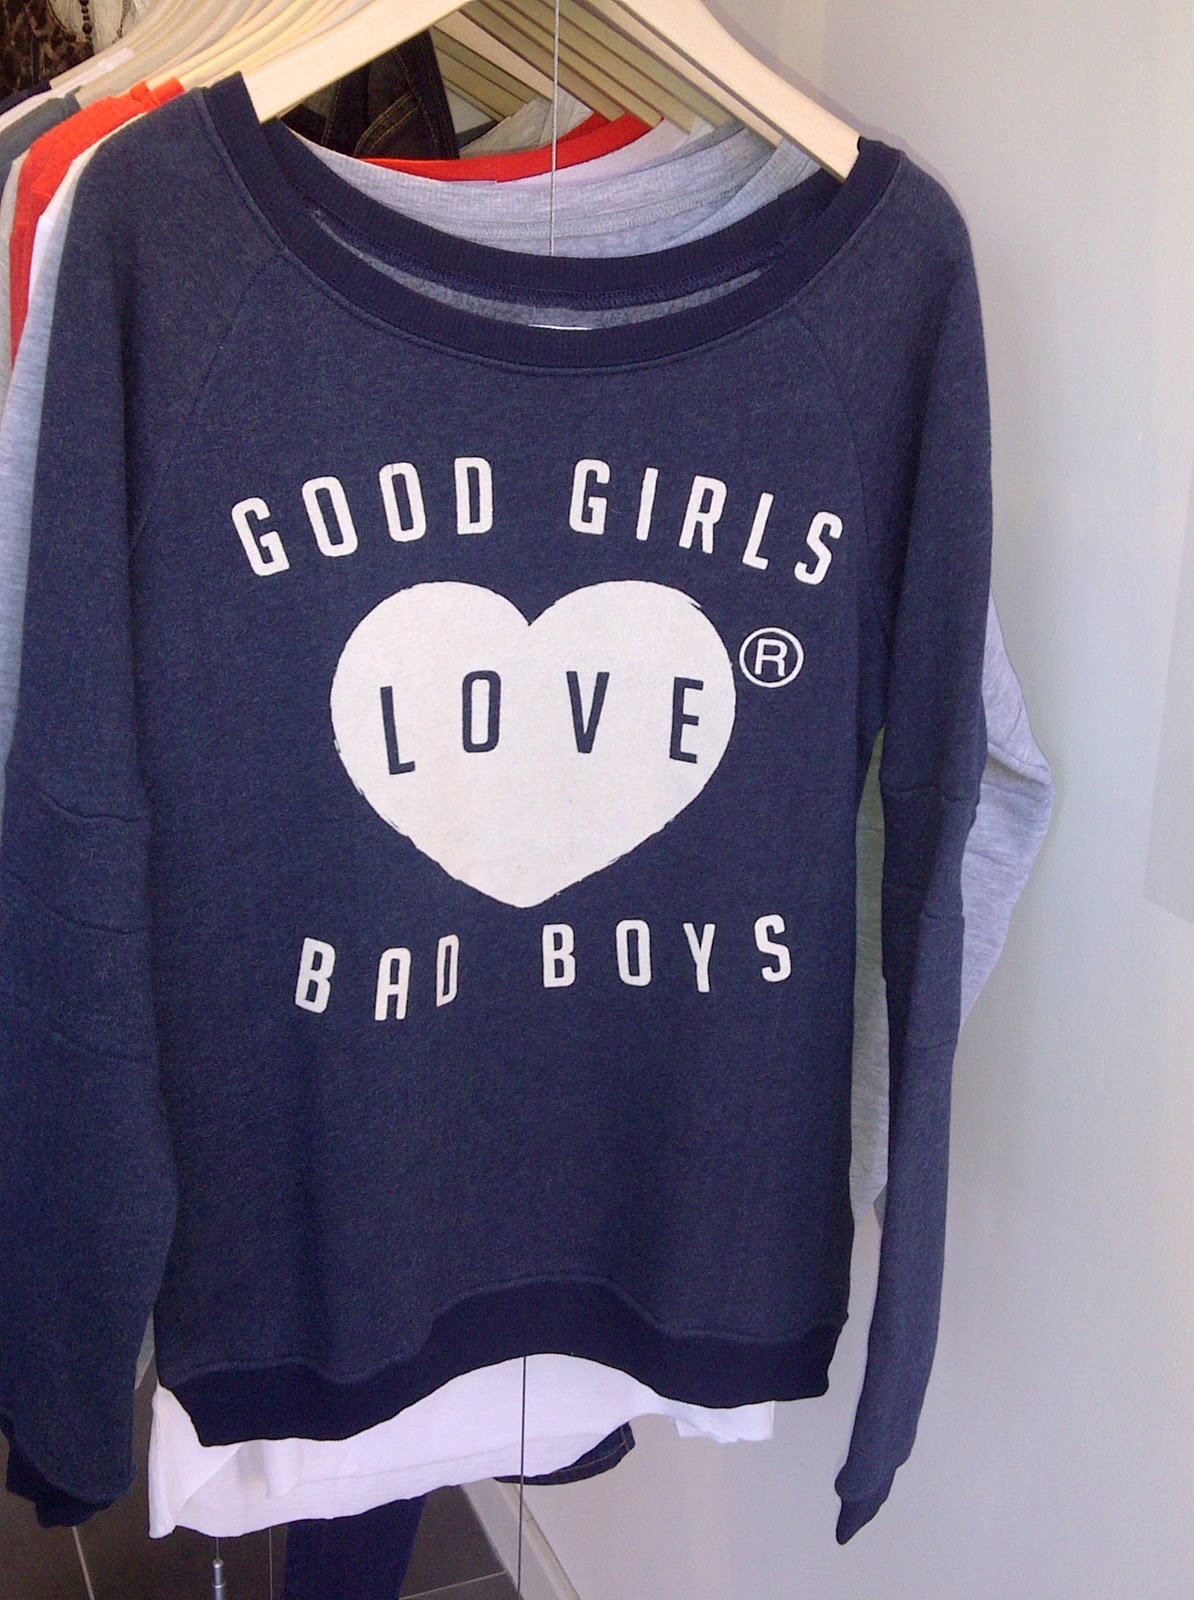 Good Girls Love Bad Boys Tumblr | www.imgkid.com - The ...